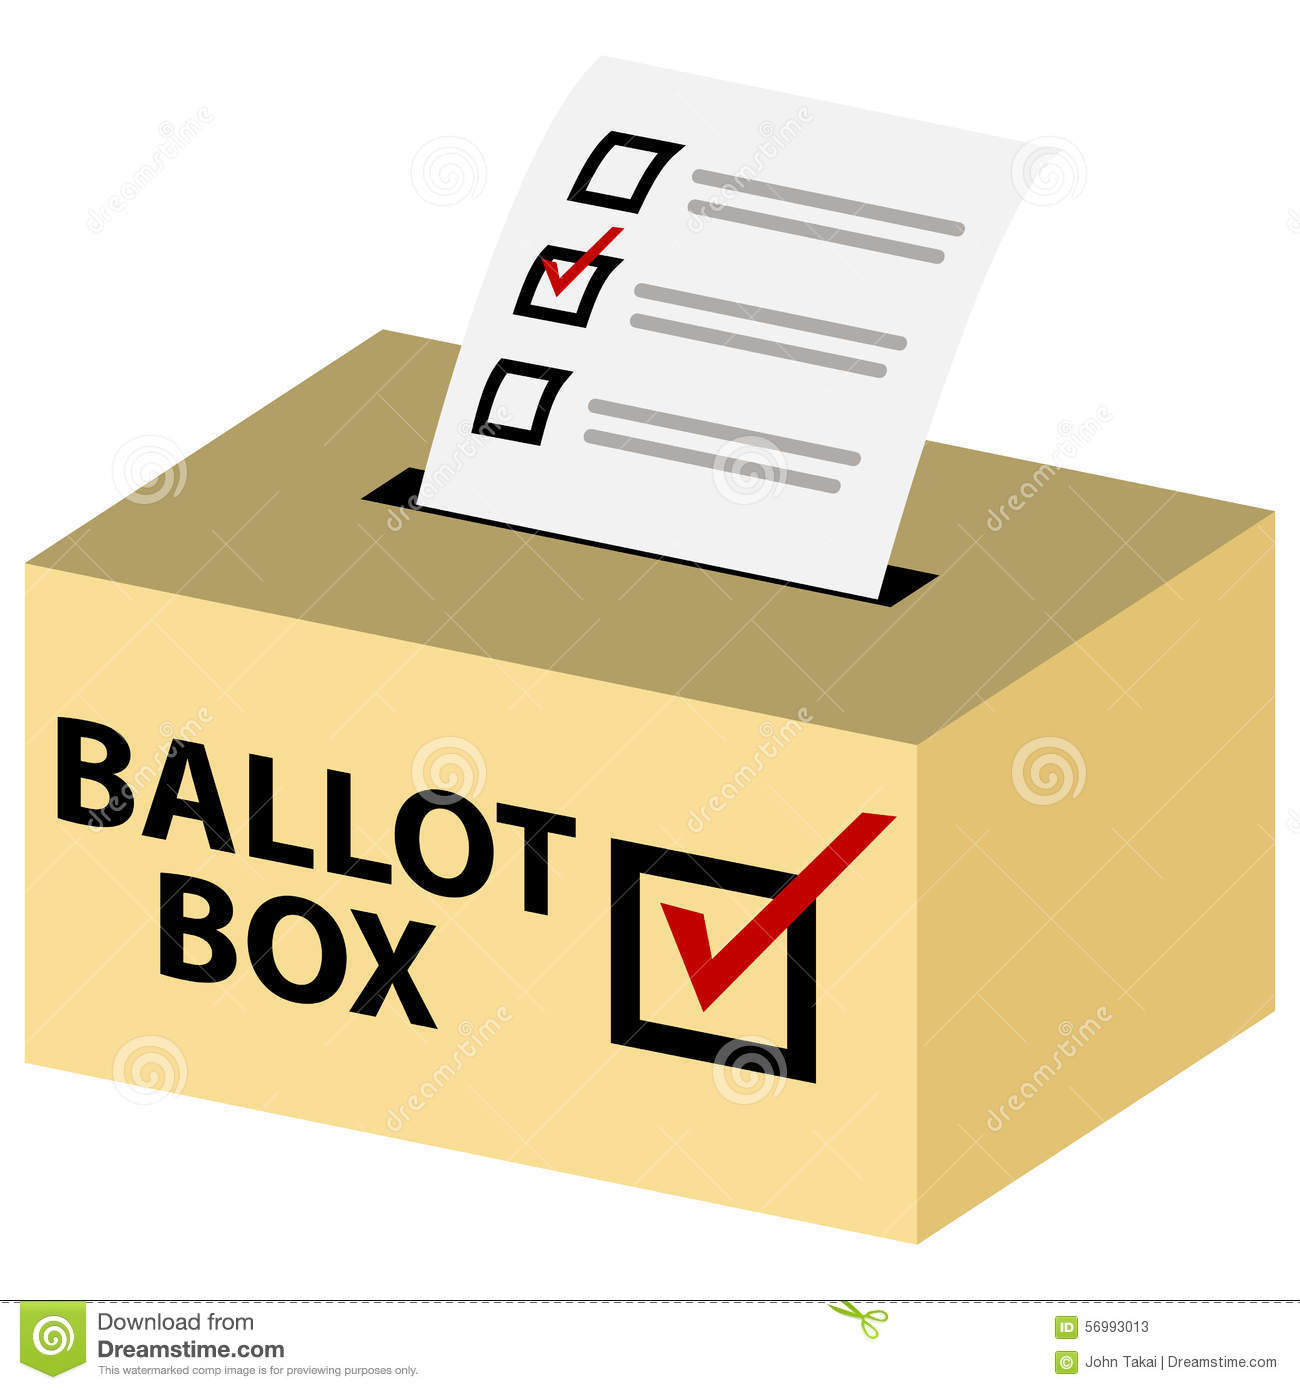 Ballots clipart - Clipground